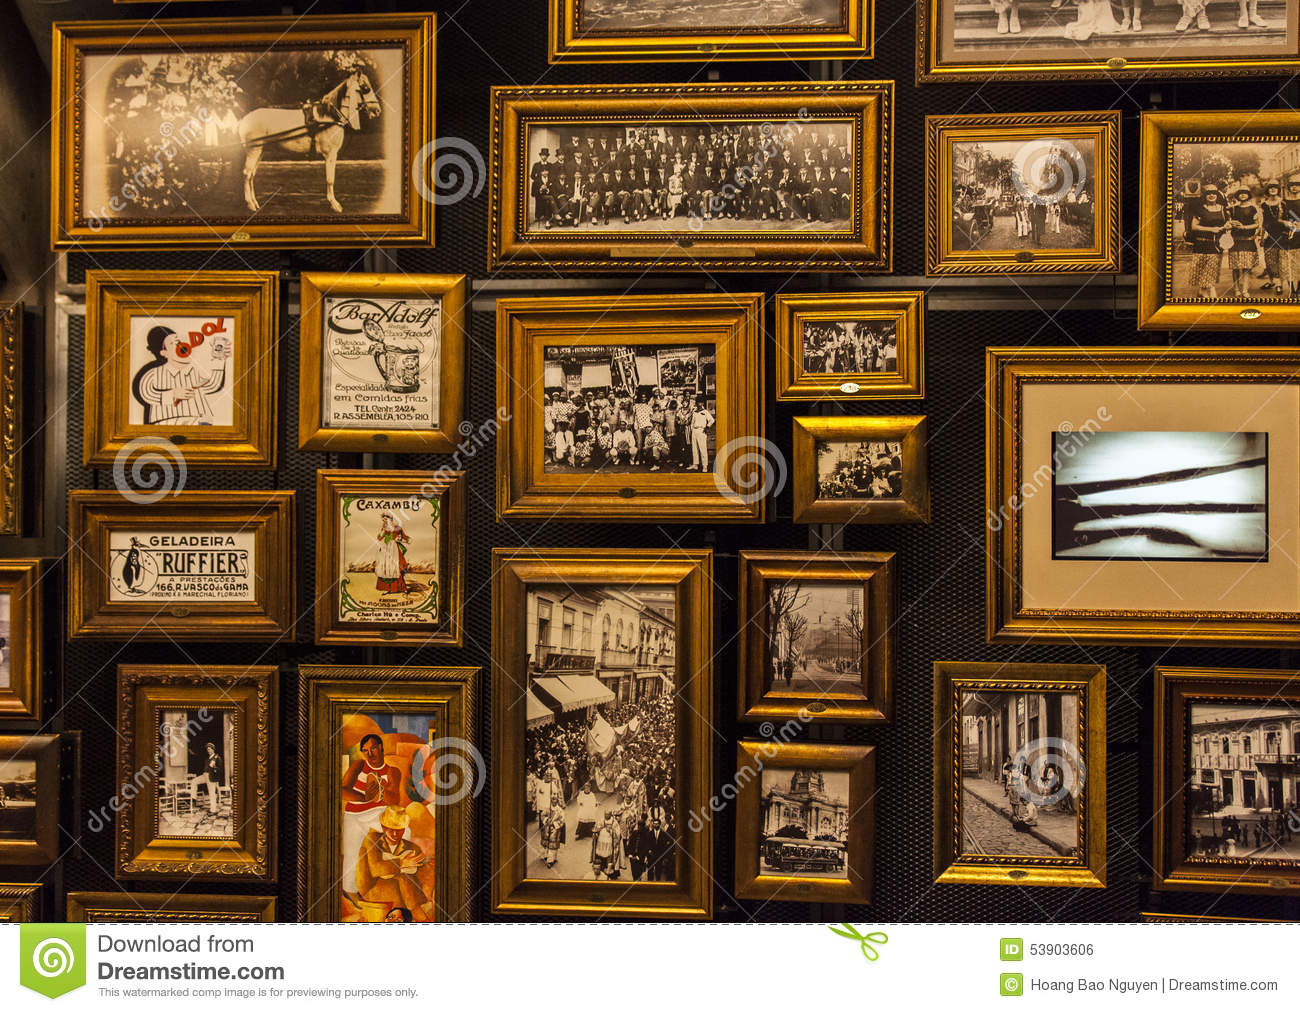 Pictures in Museum of football in Sao Paulo, Brazil